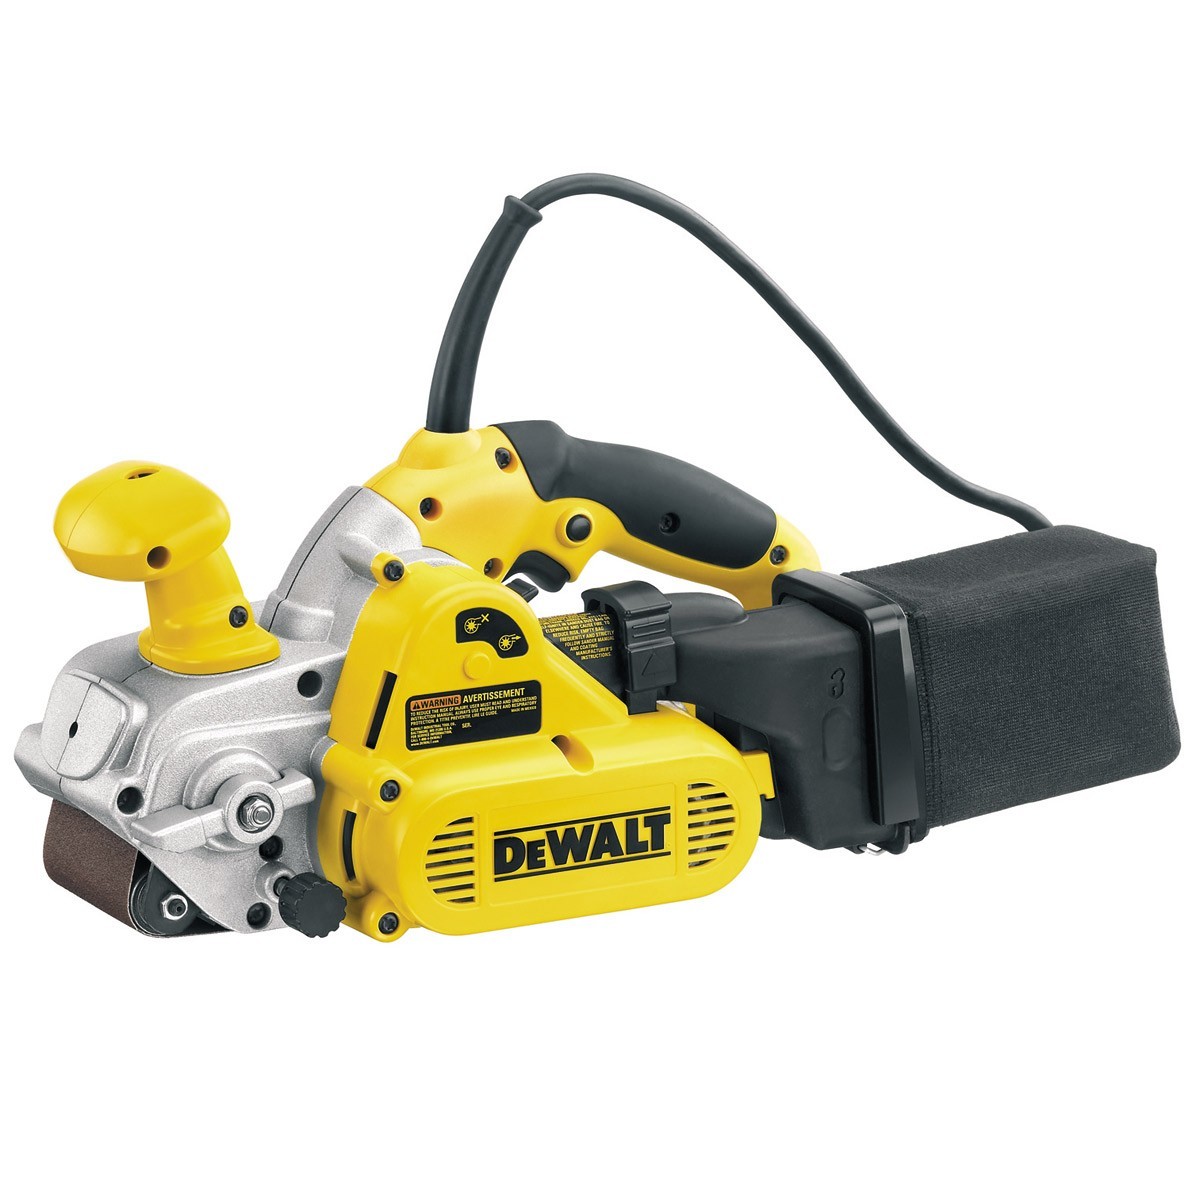 DeWalt DW433 75mm 800w Electronic Belt Sander 240v